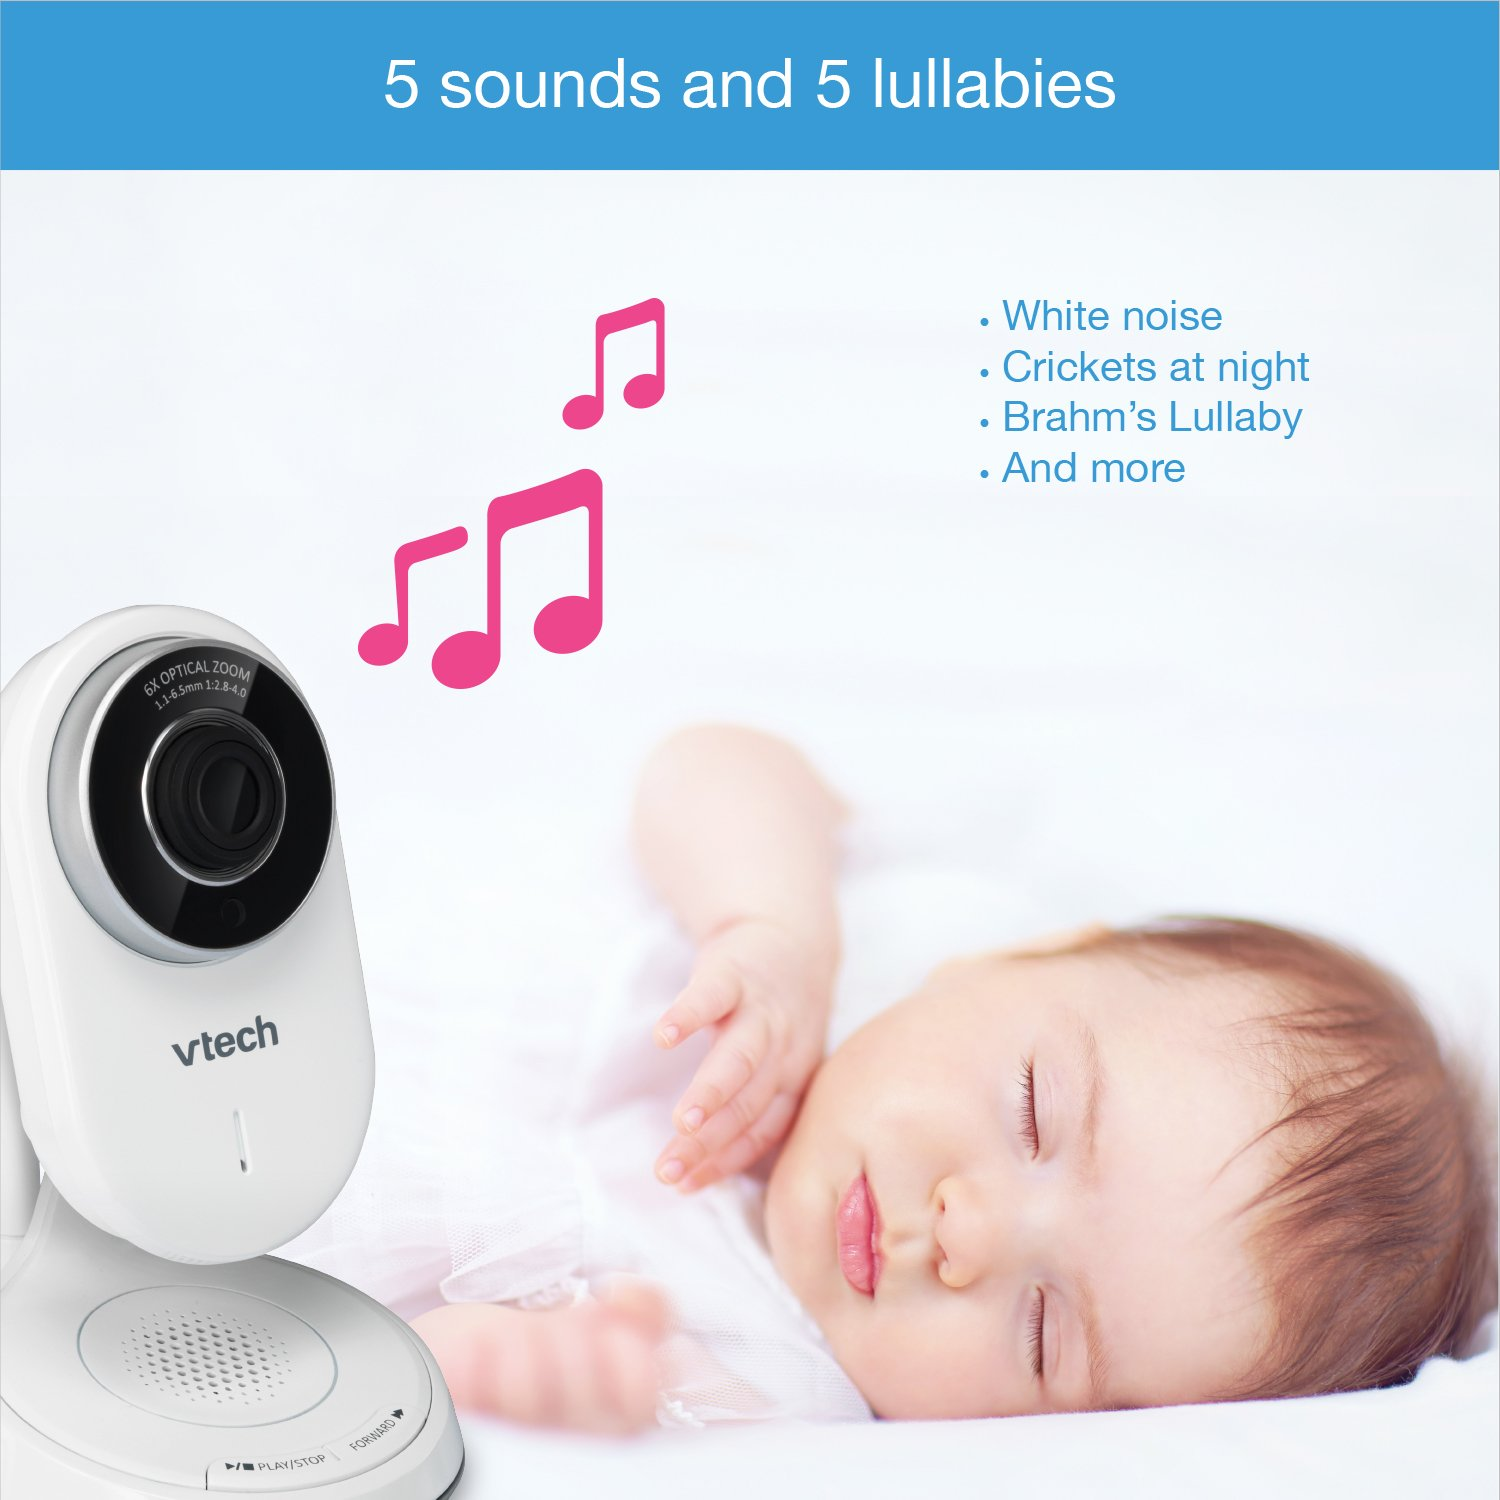 VTech VM5271-2 Video Baby Monitor with 5-inch Screen, Motorized Lens with 6x Optical Zoom, Soothing Sounds & Lullabies, Temperature Sensor & 1,000 feet of Range with 2 Cameras by VTech (Image #8)